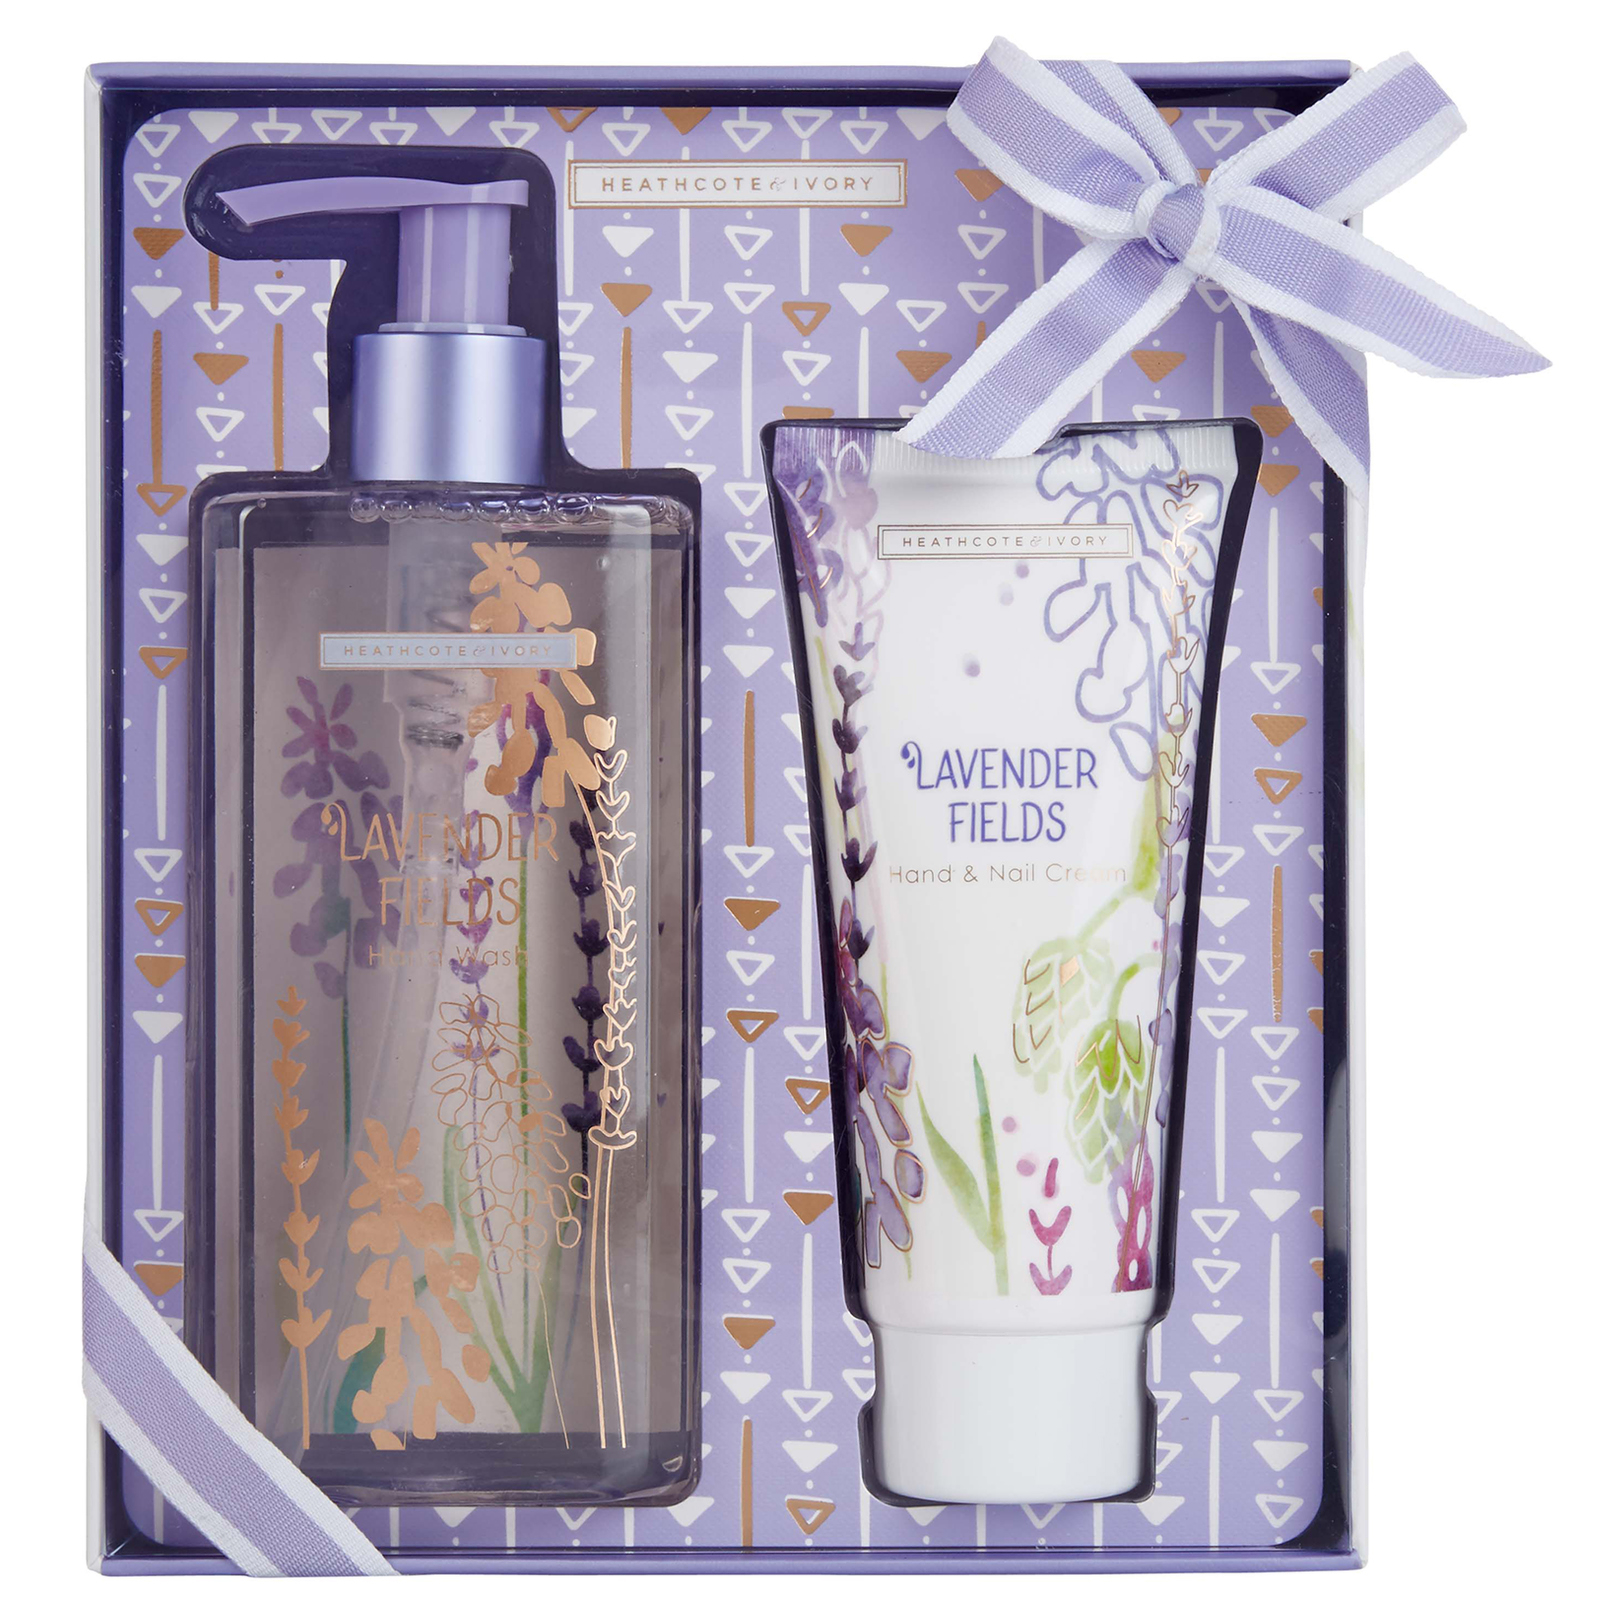 Heathcote & Ivory Lavender Fields Hand Wash and Hand Cream Set